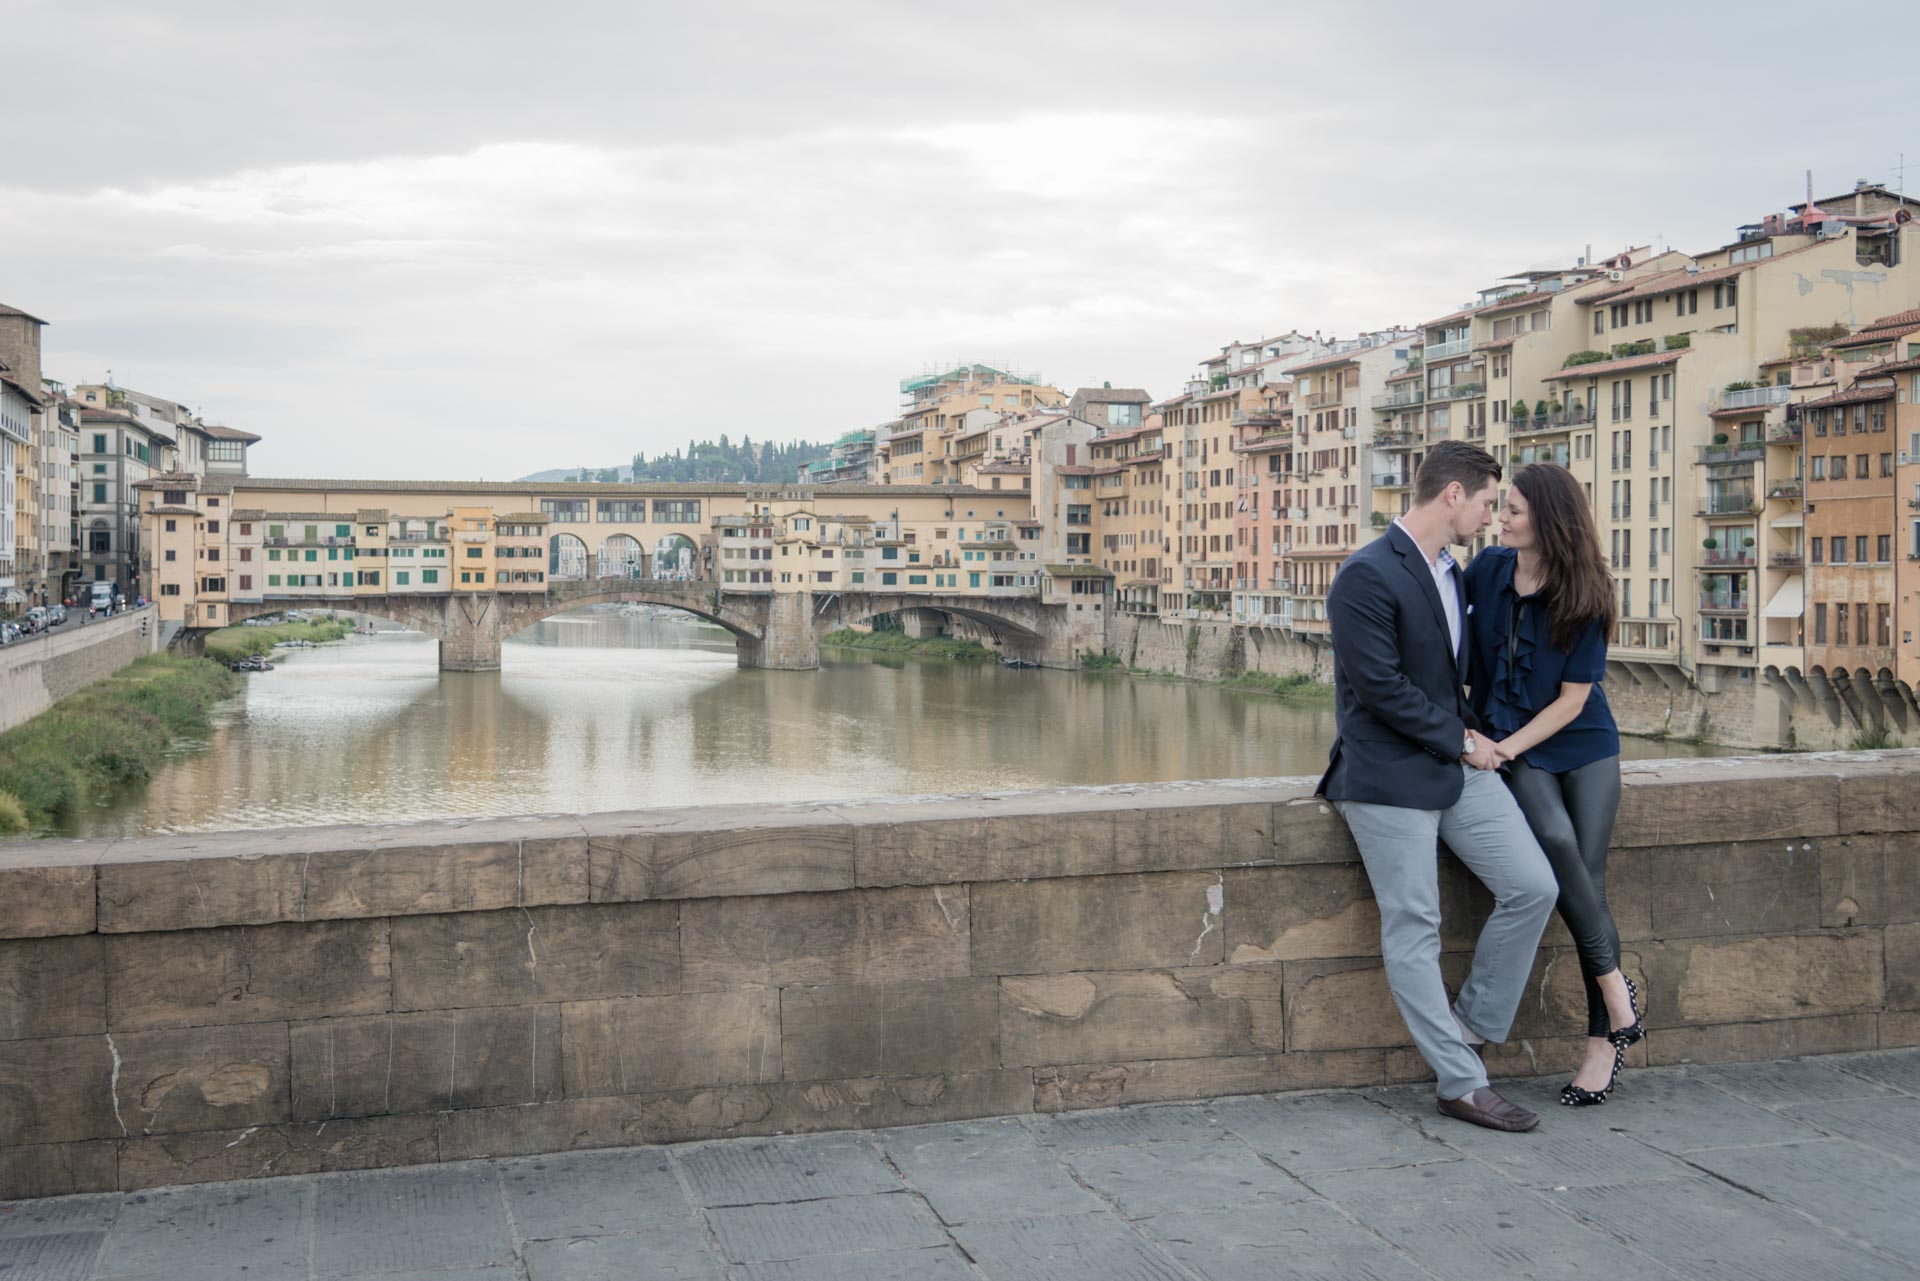 Posh City Shoot in Florence